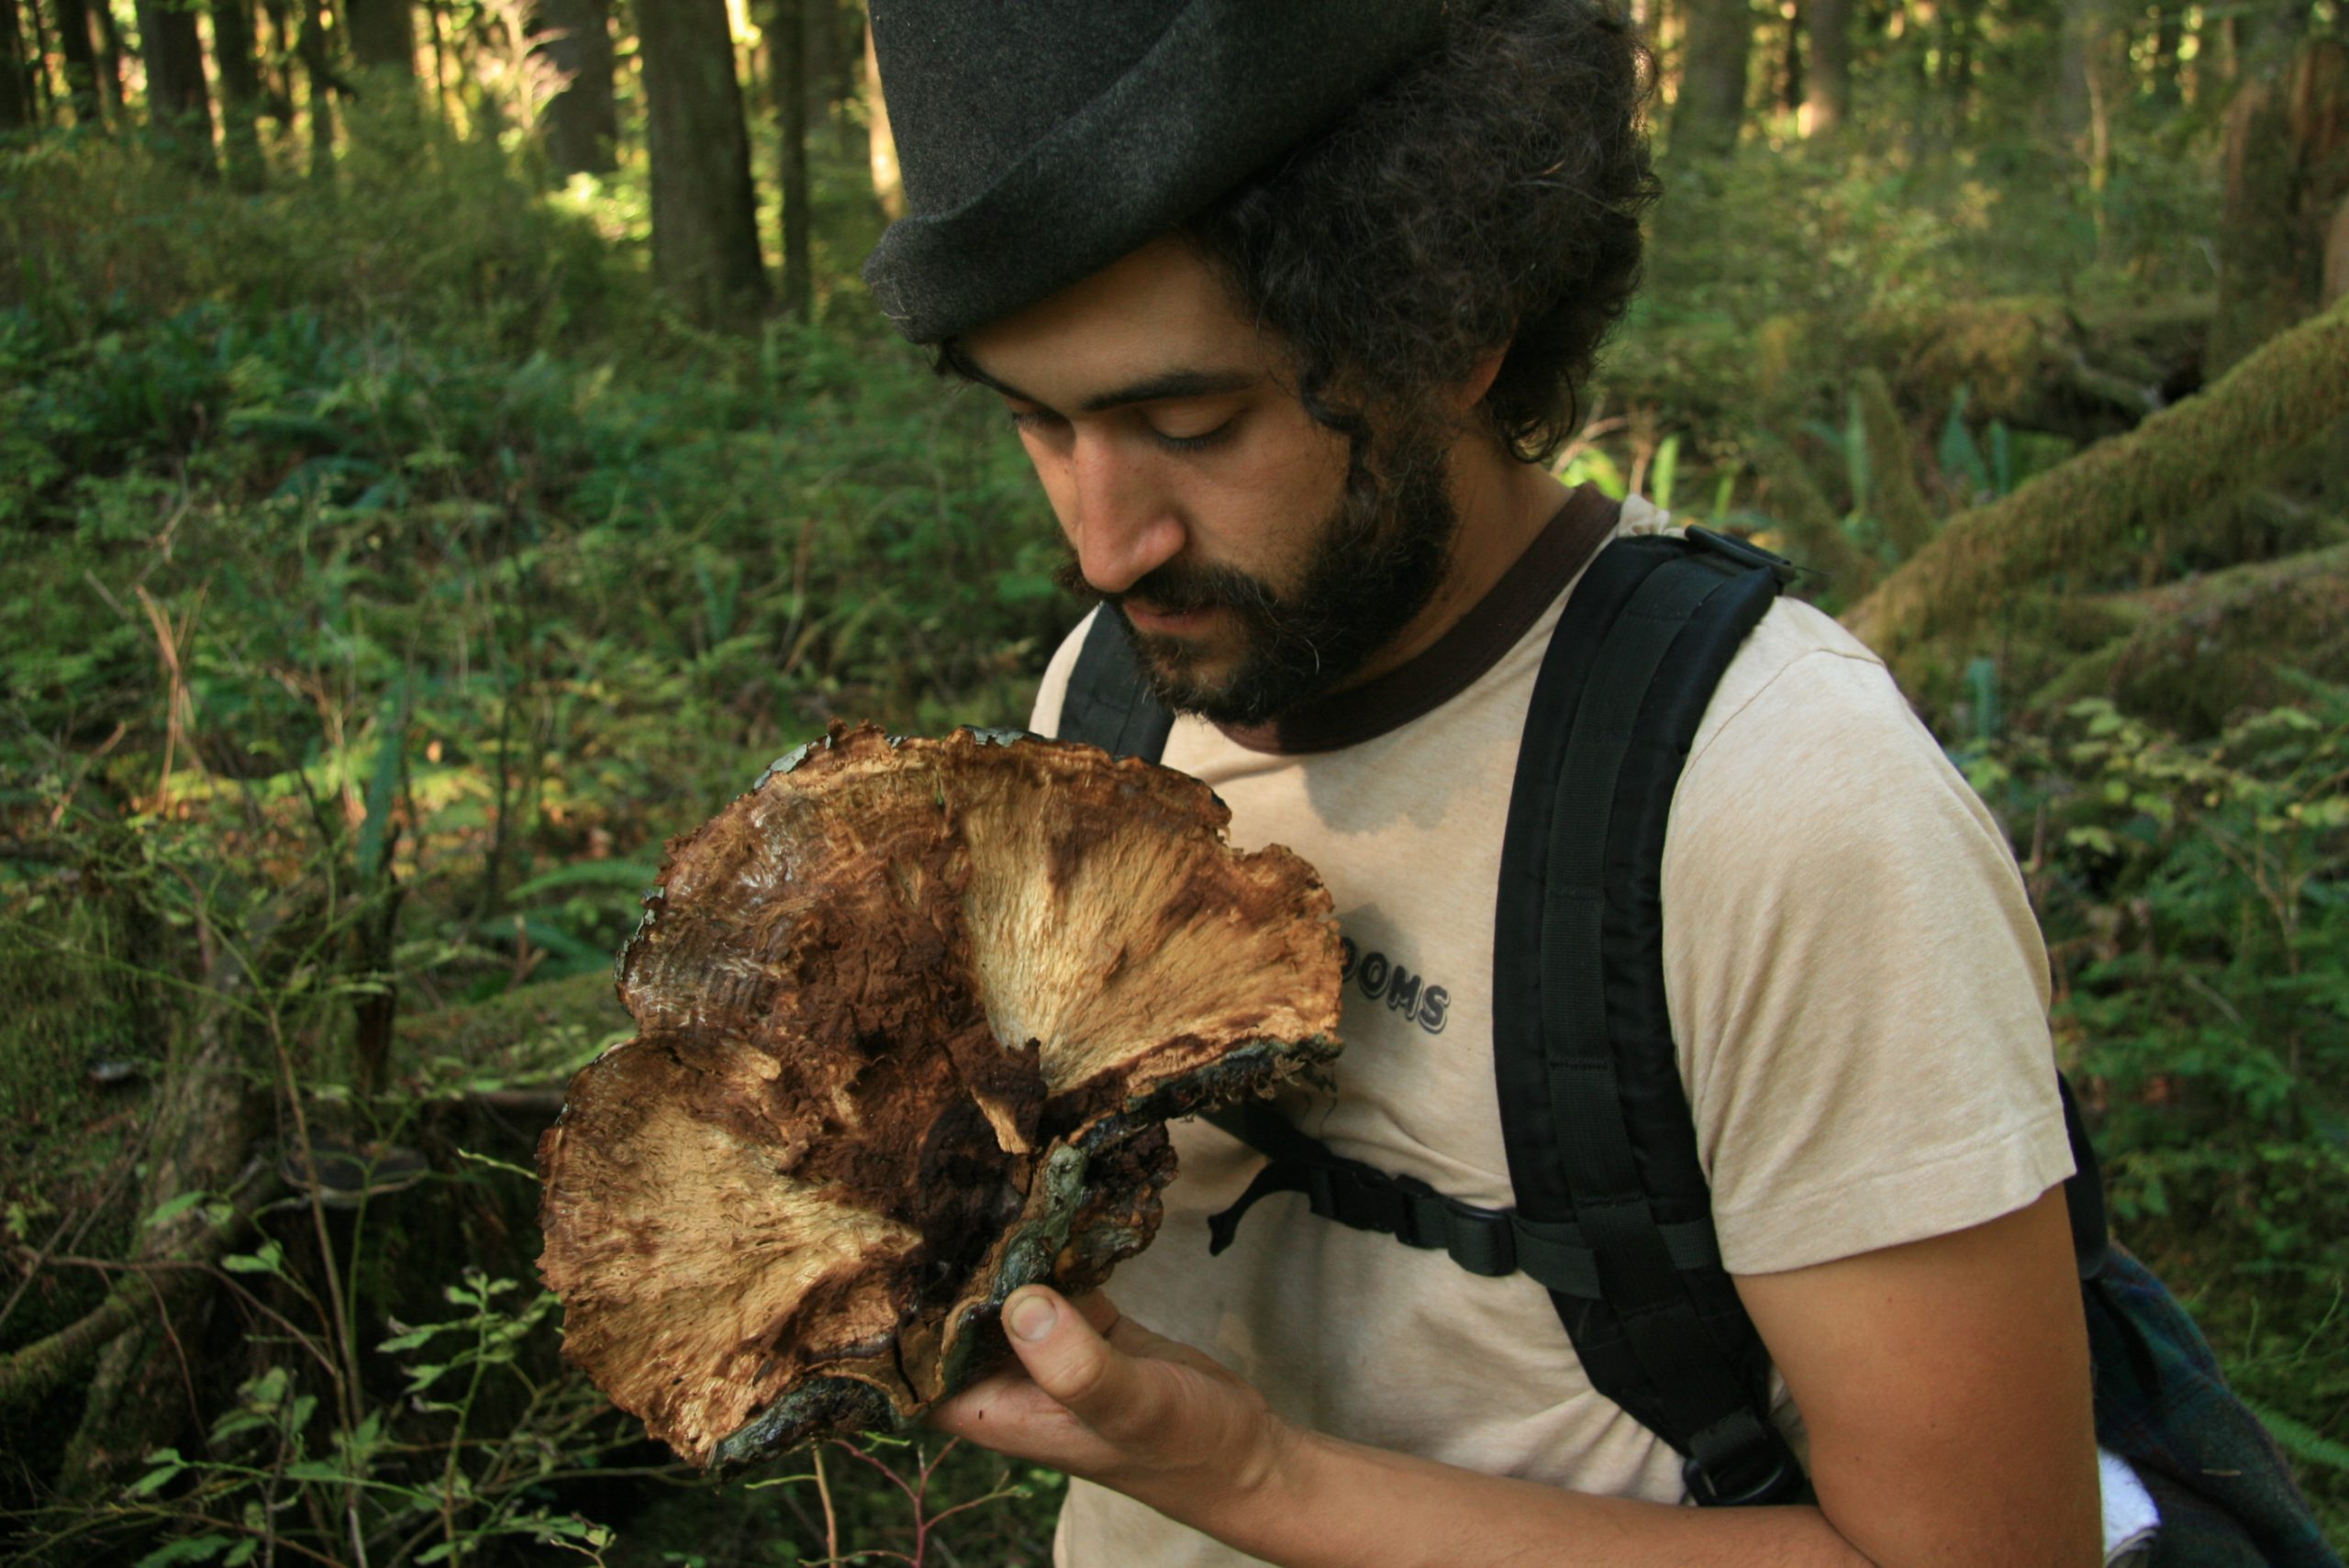 Willoughby Arevalo stands in a forest surrounded by trees while holding a large mushroom.